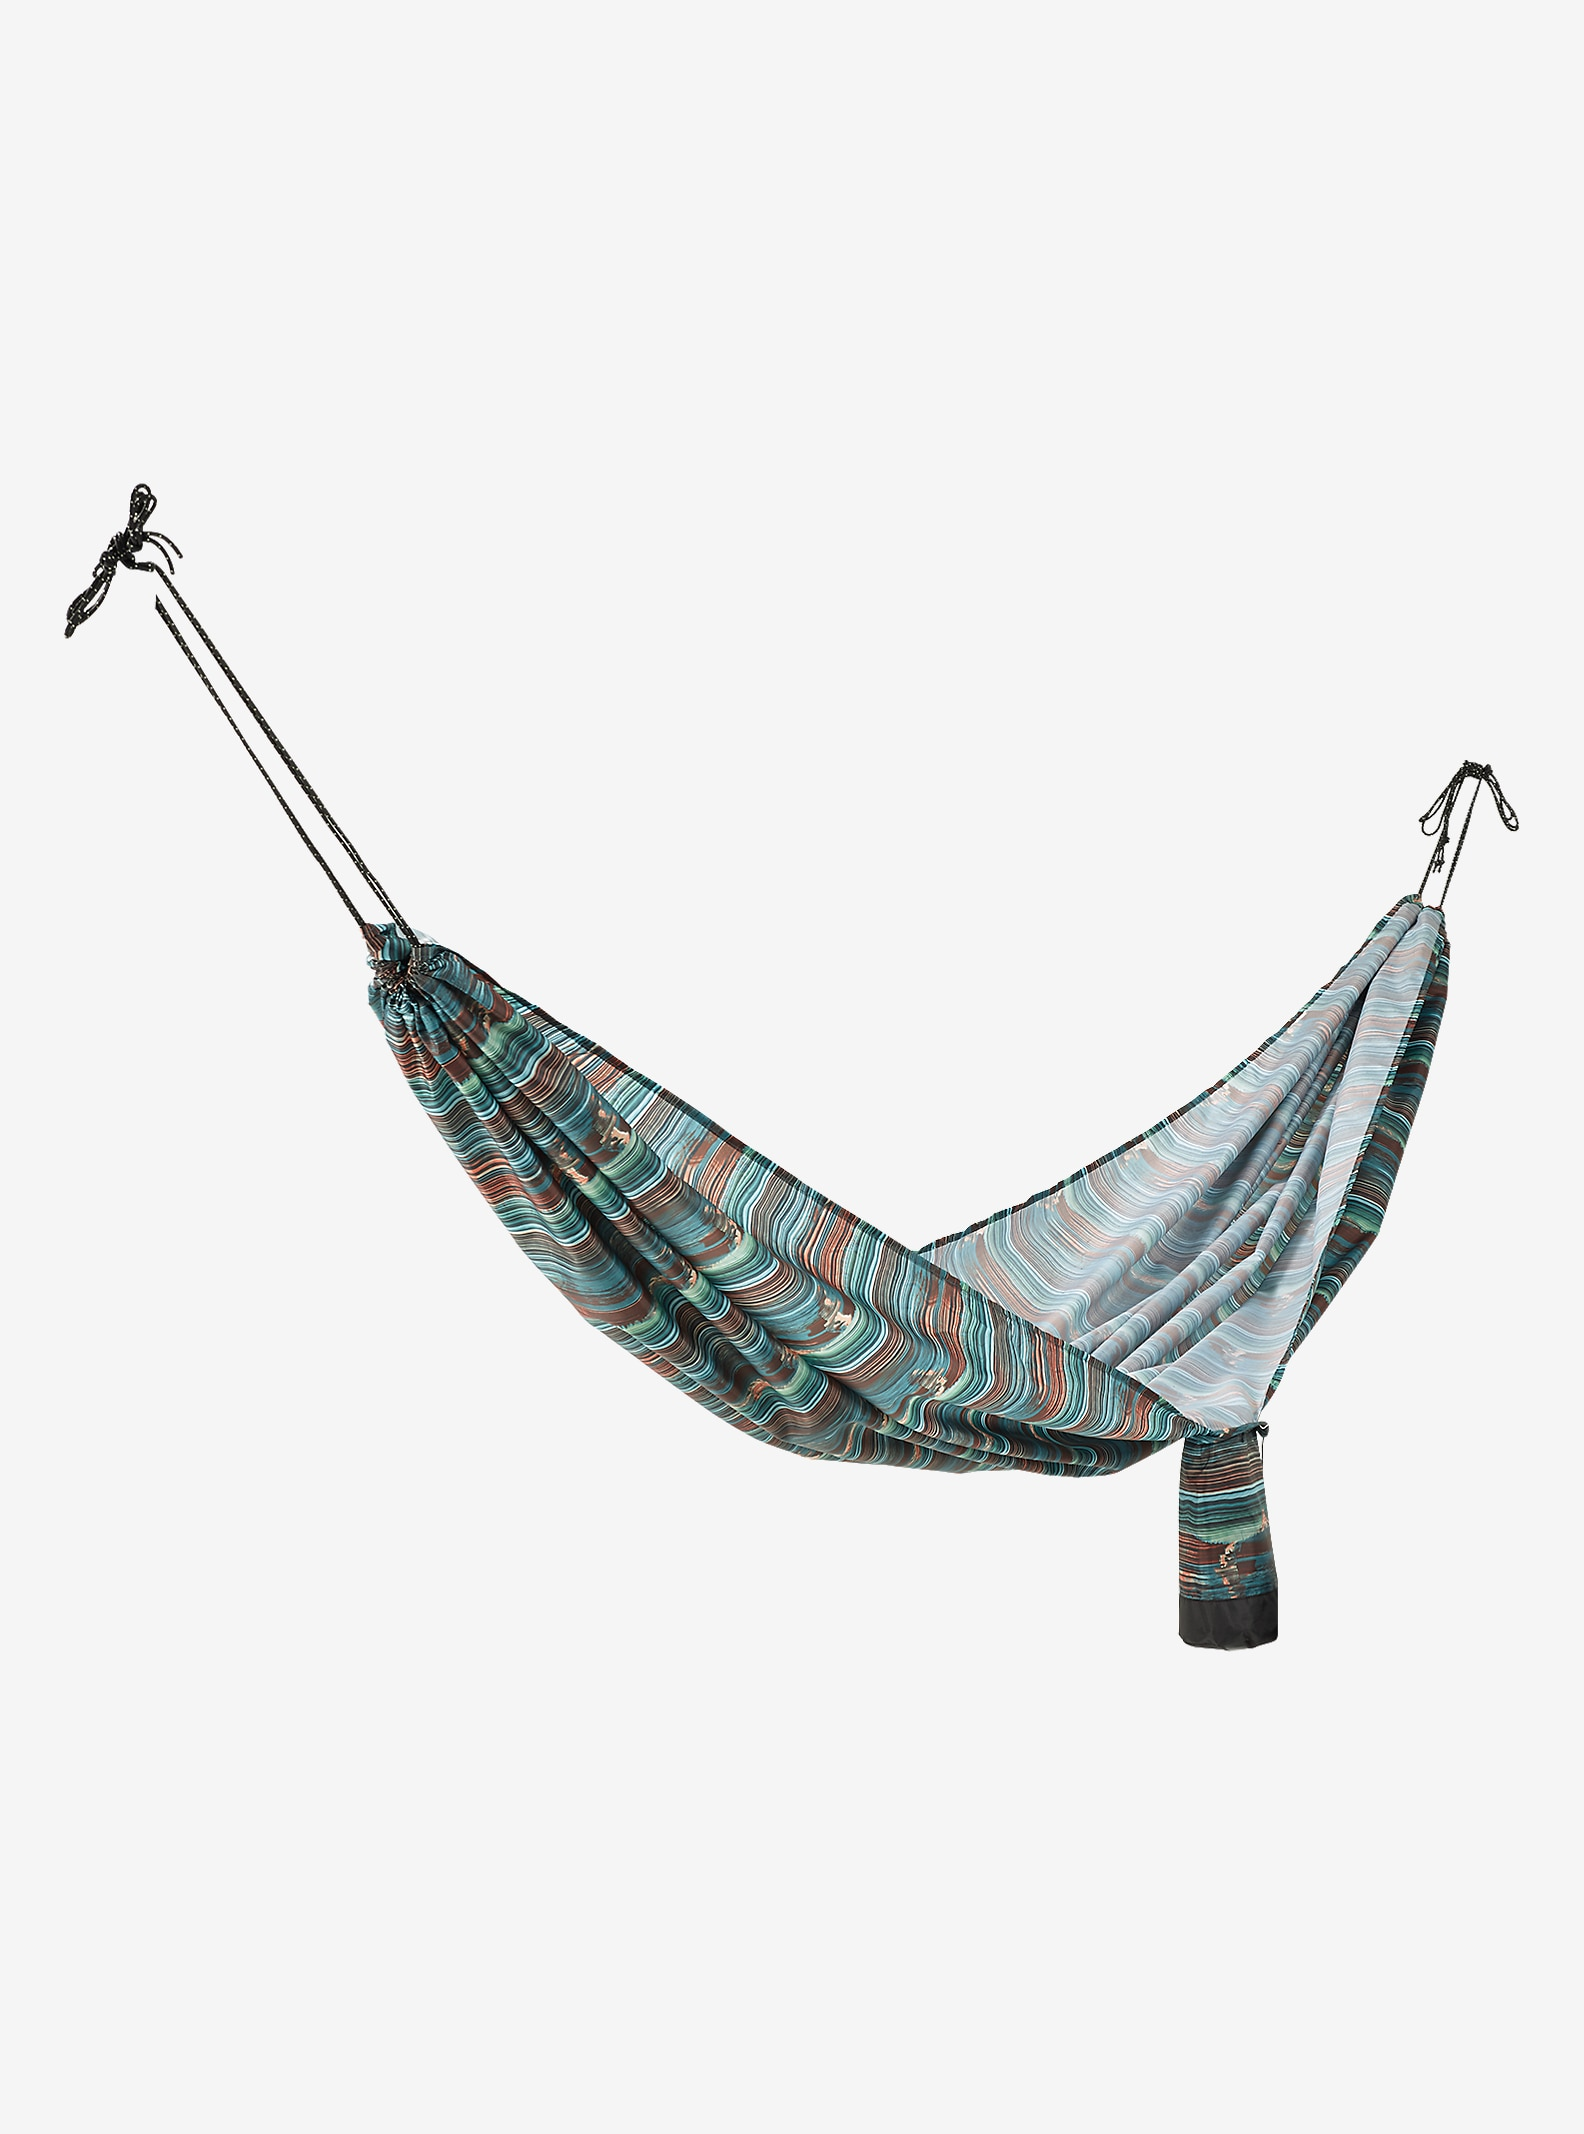 HCSC x Burton Honey-Baked Hammock shown in HCSC Scout Bright